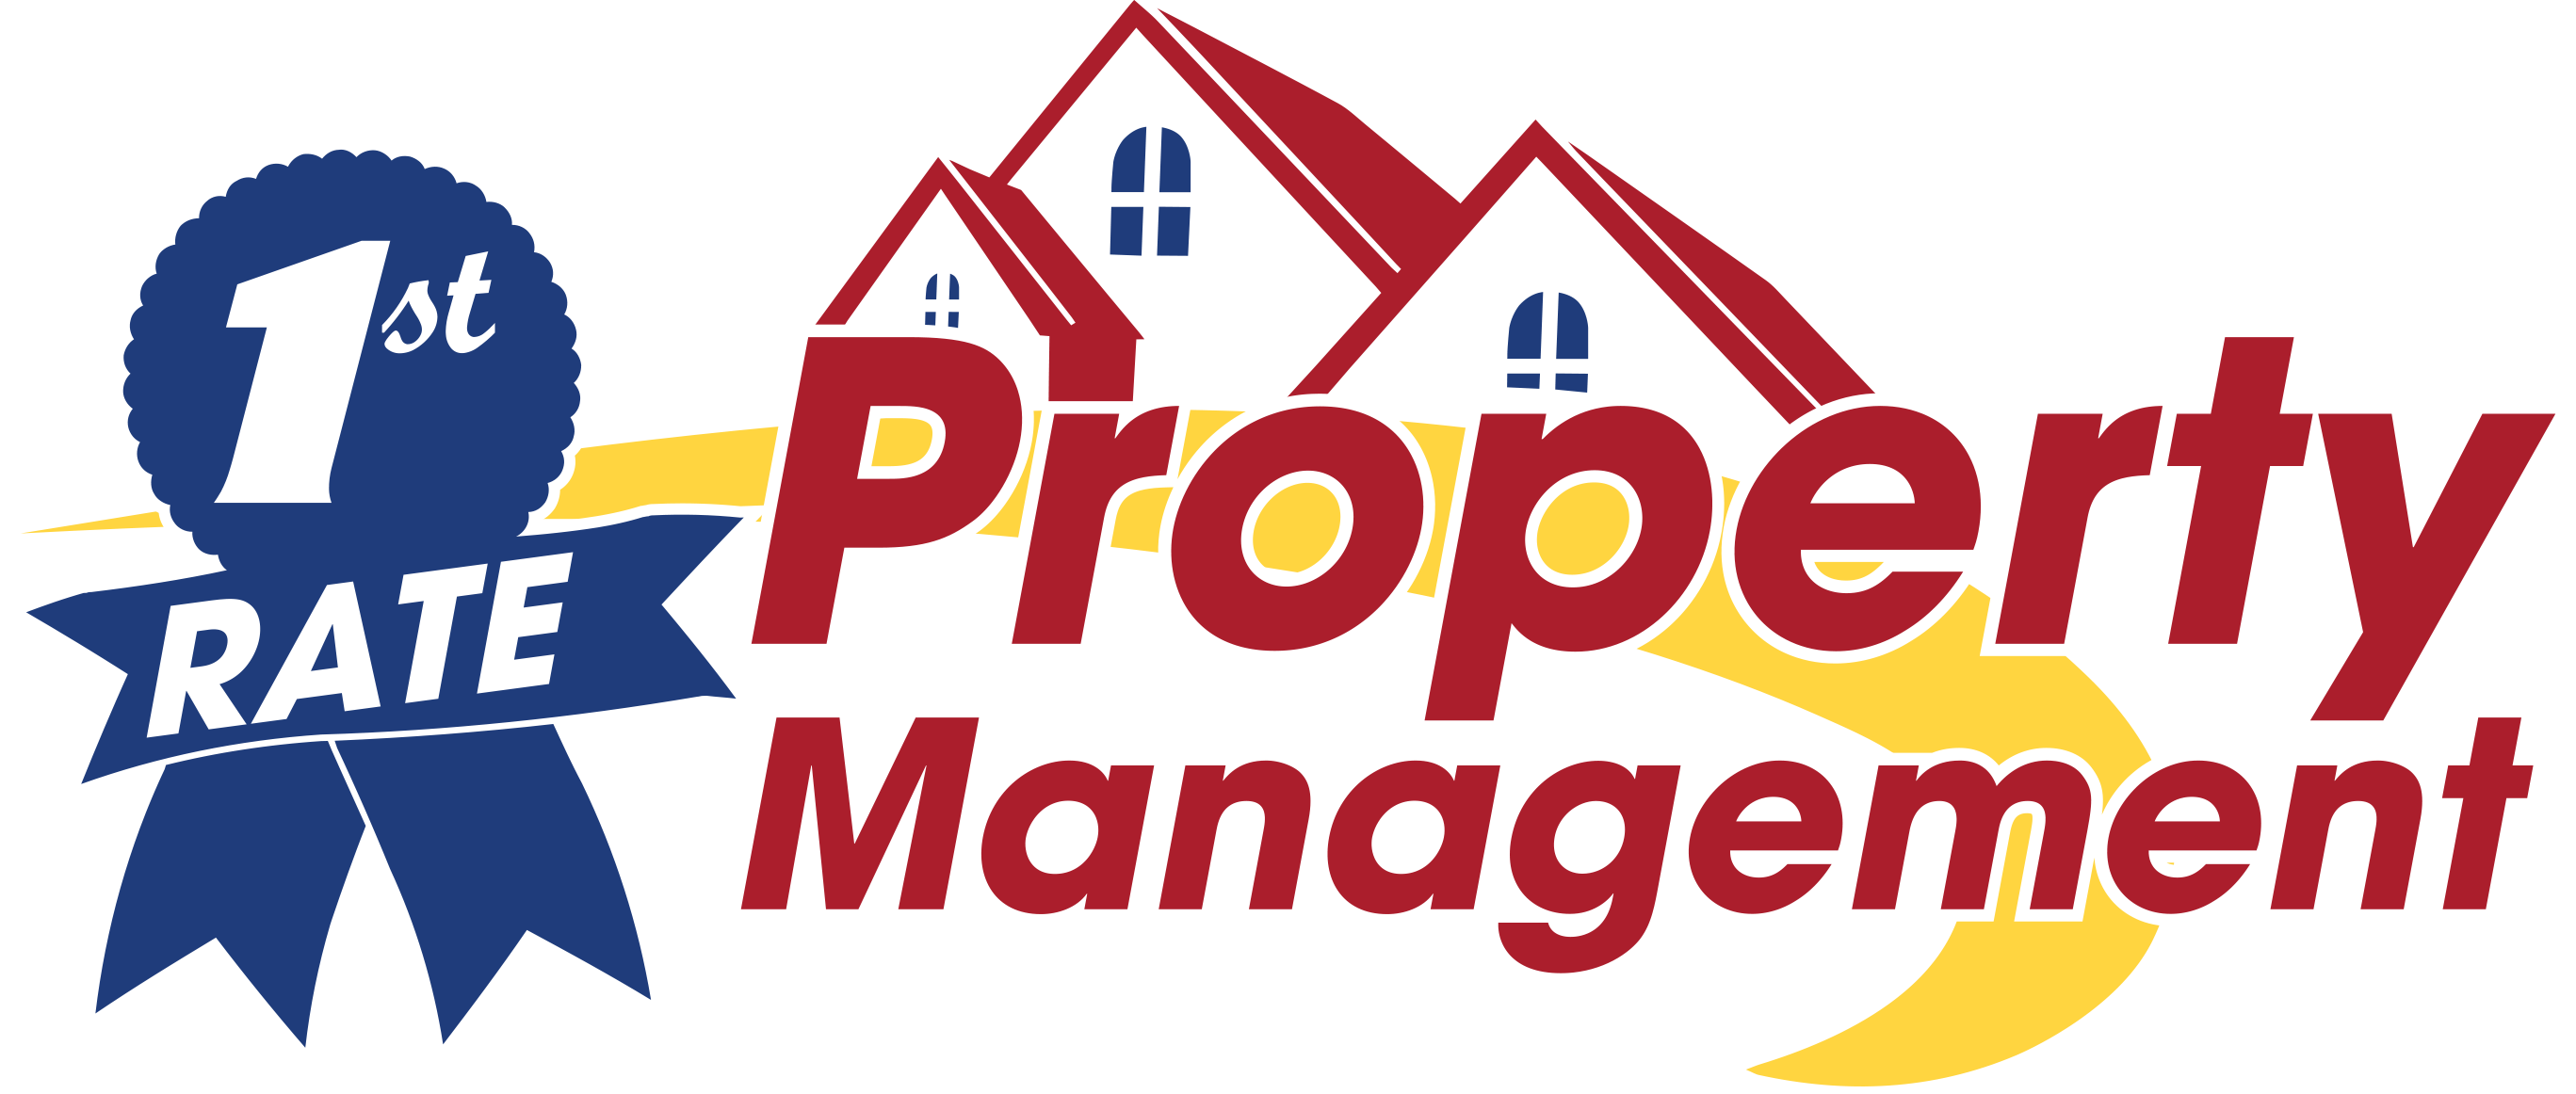 First Rate Property Management logo